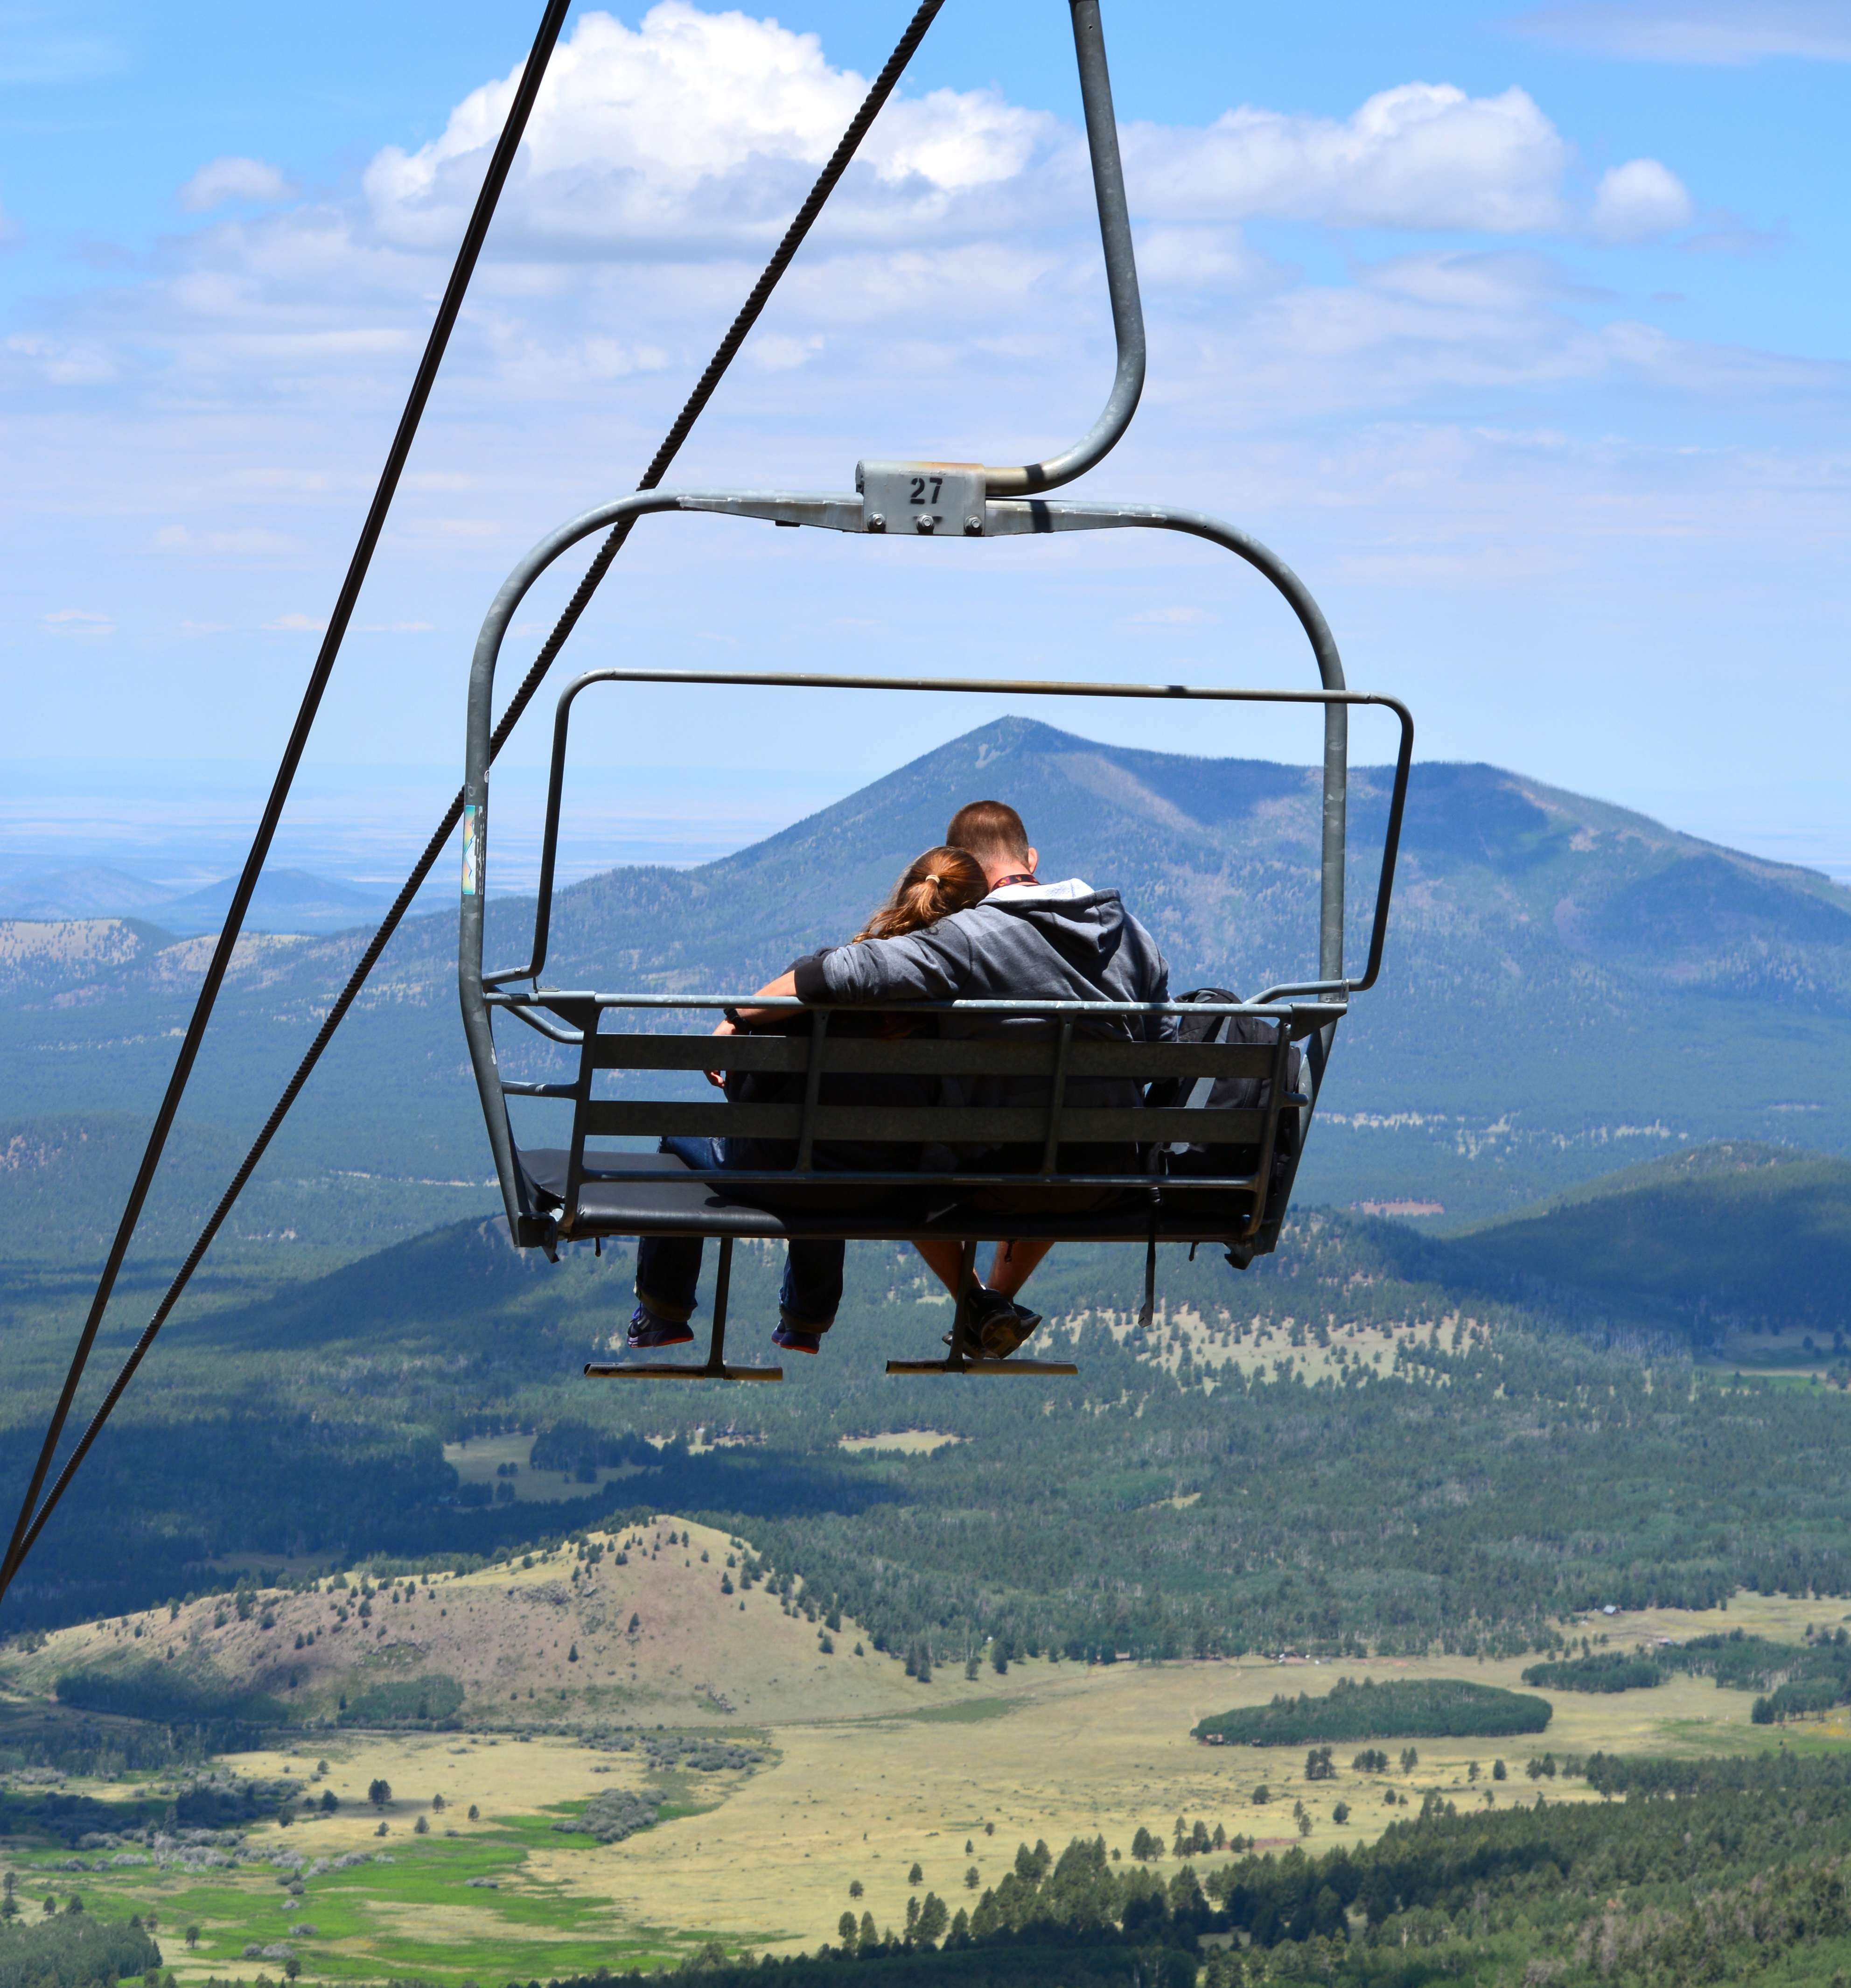 swing chair local old wooden barrel chairs az snowbowl chairlift open flagstaff business and online